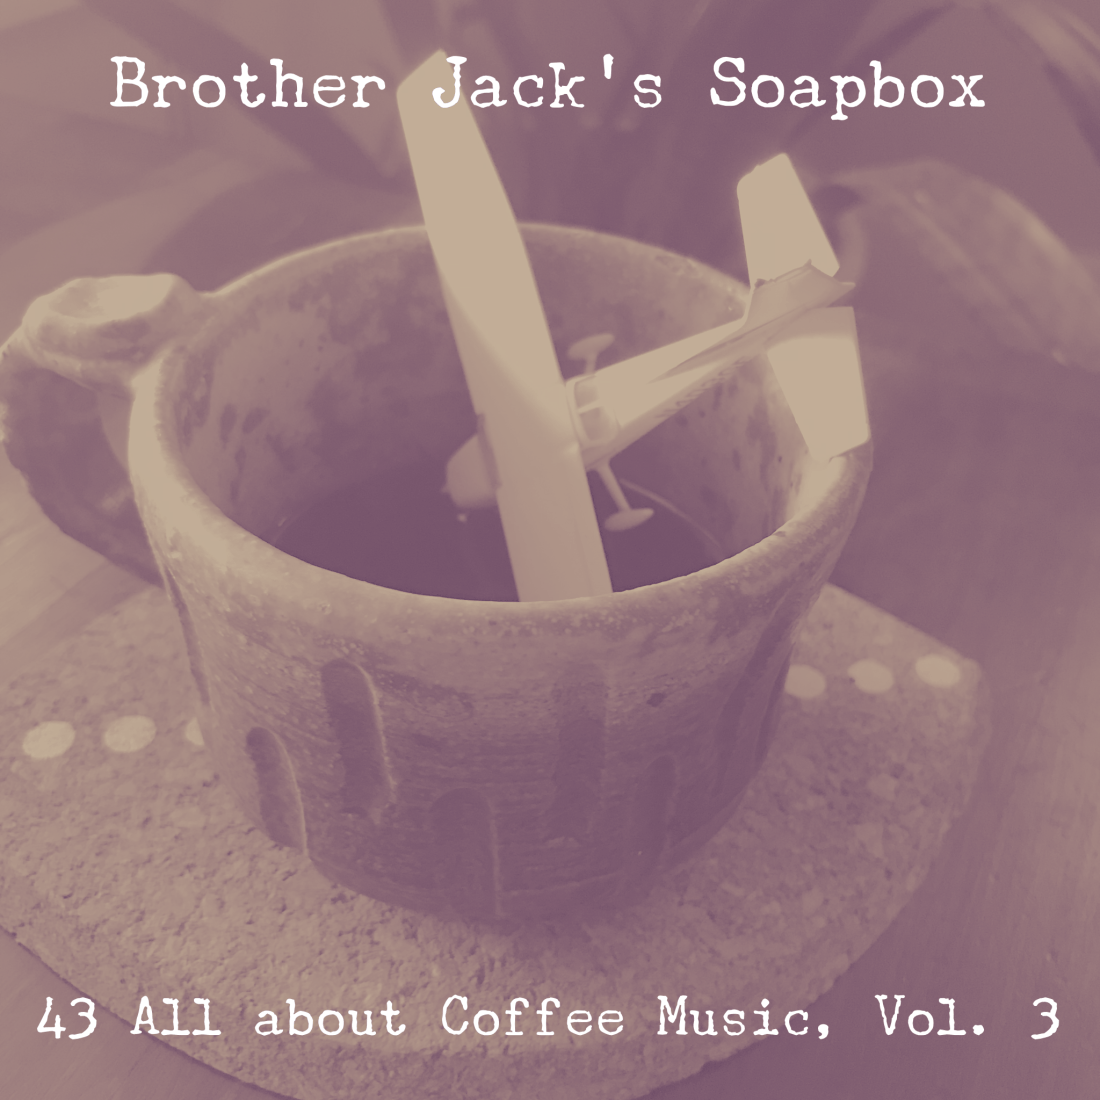 43 All about Coffee Music, Vol. 3